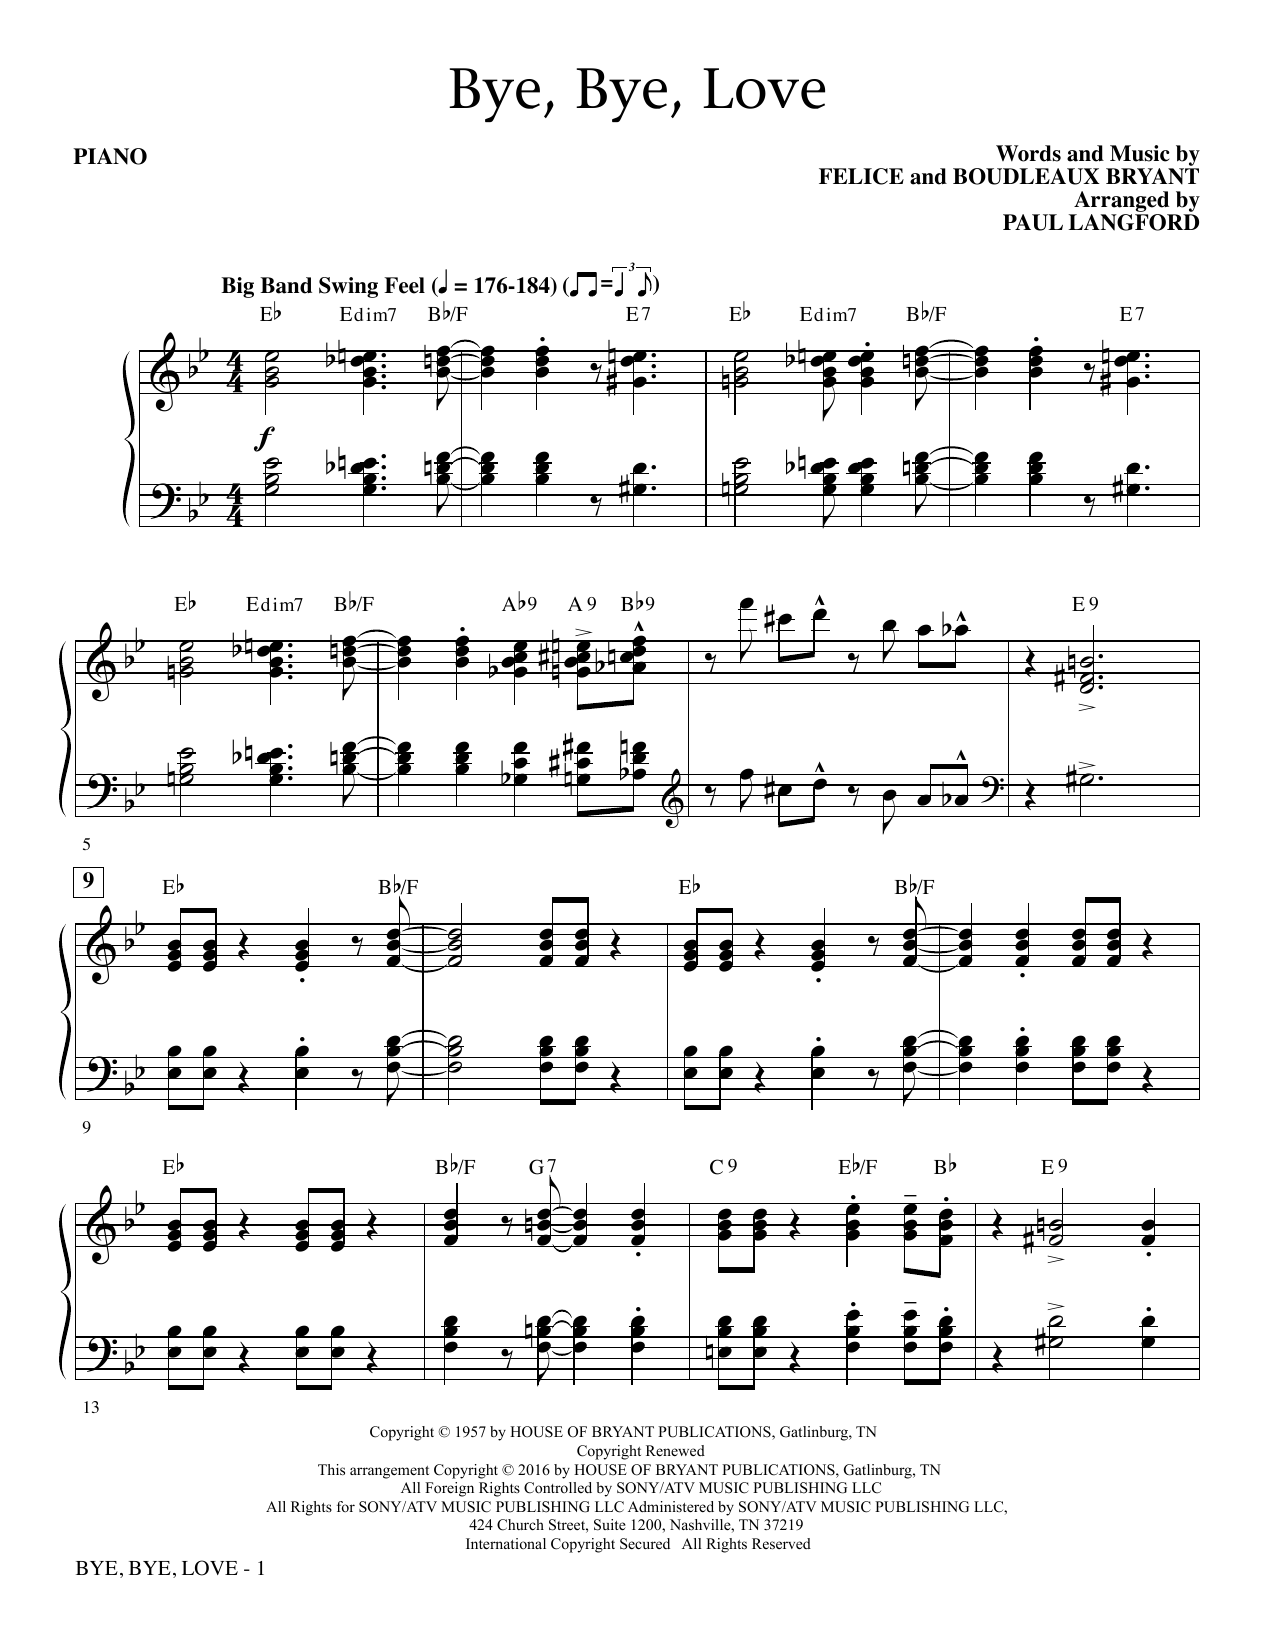 Paul Langford Bye, Bye Love - Piano sheet music notes and chords. Download Printable PDF.